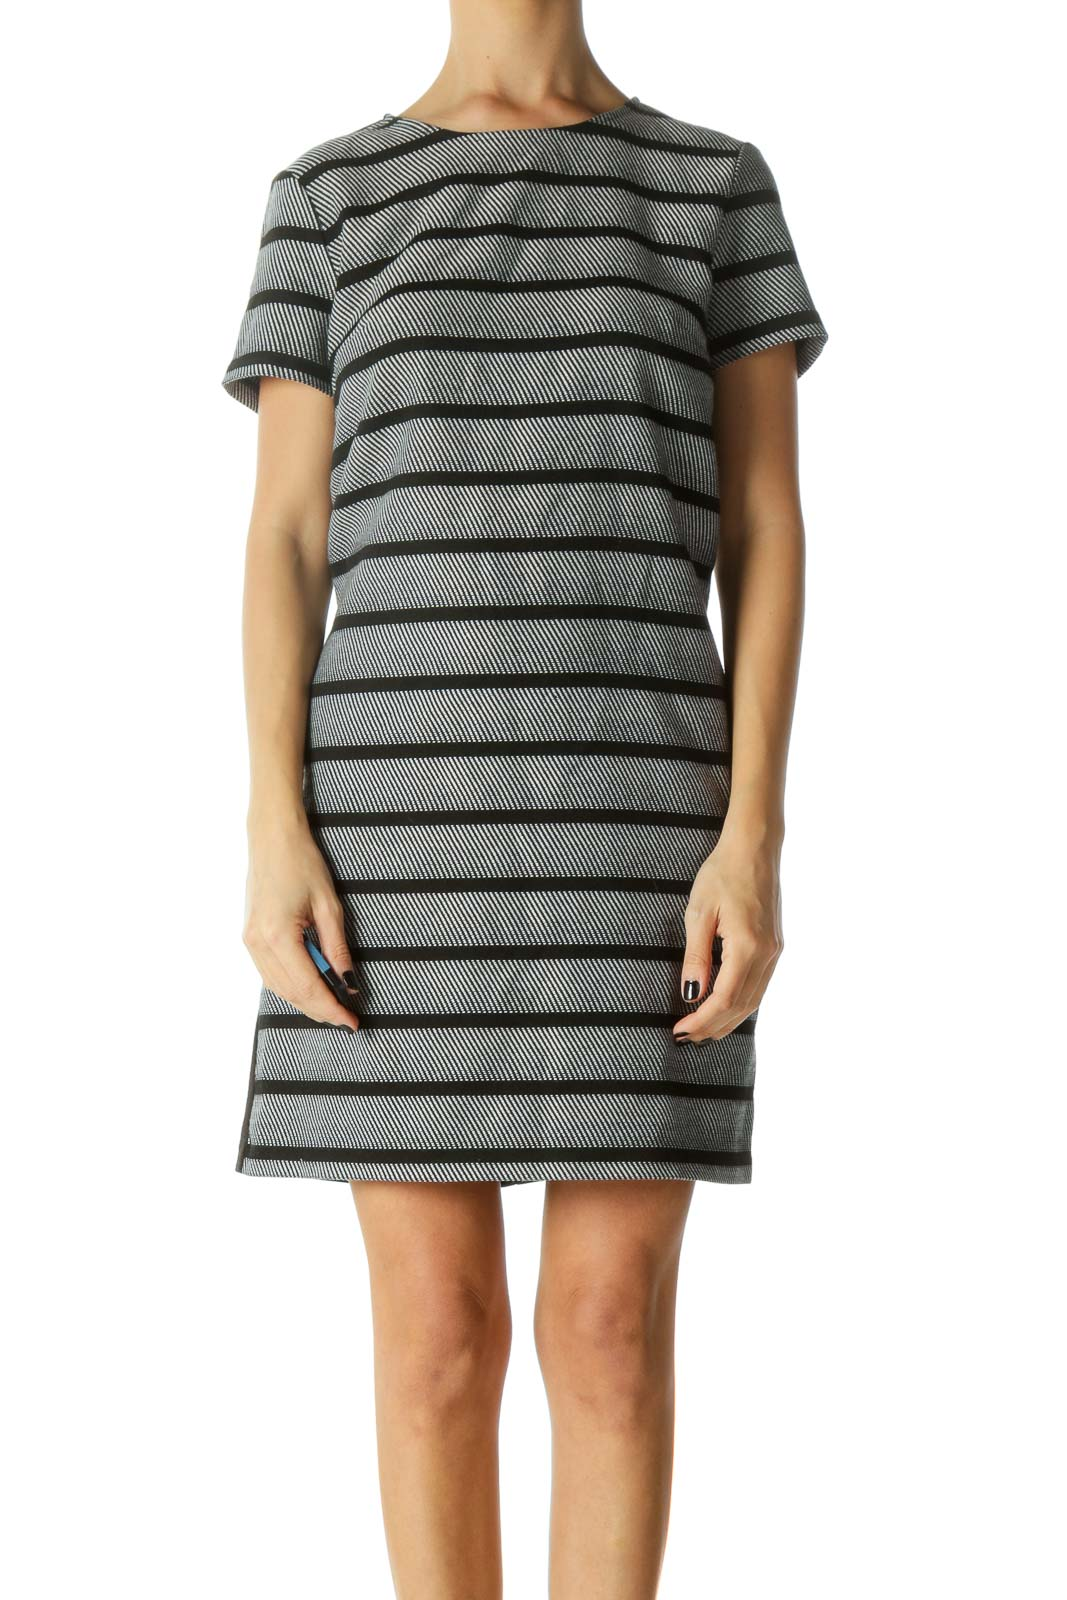 Black and White Striped Short Sleeve Knit Dress